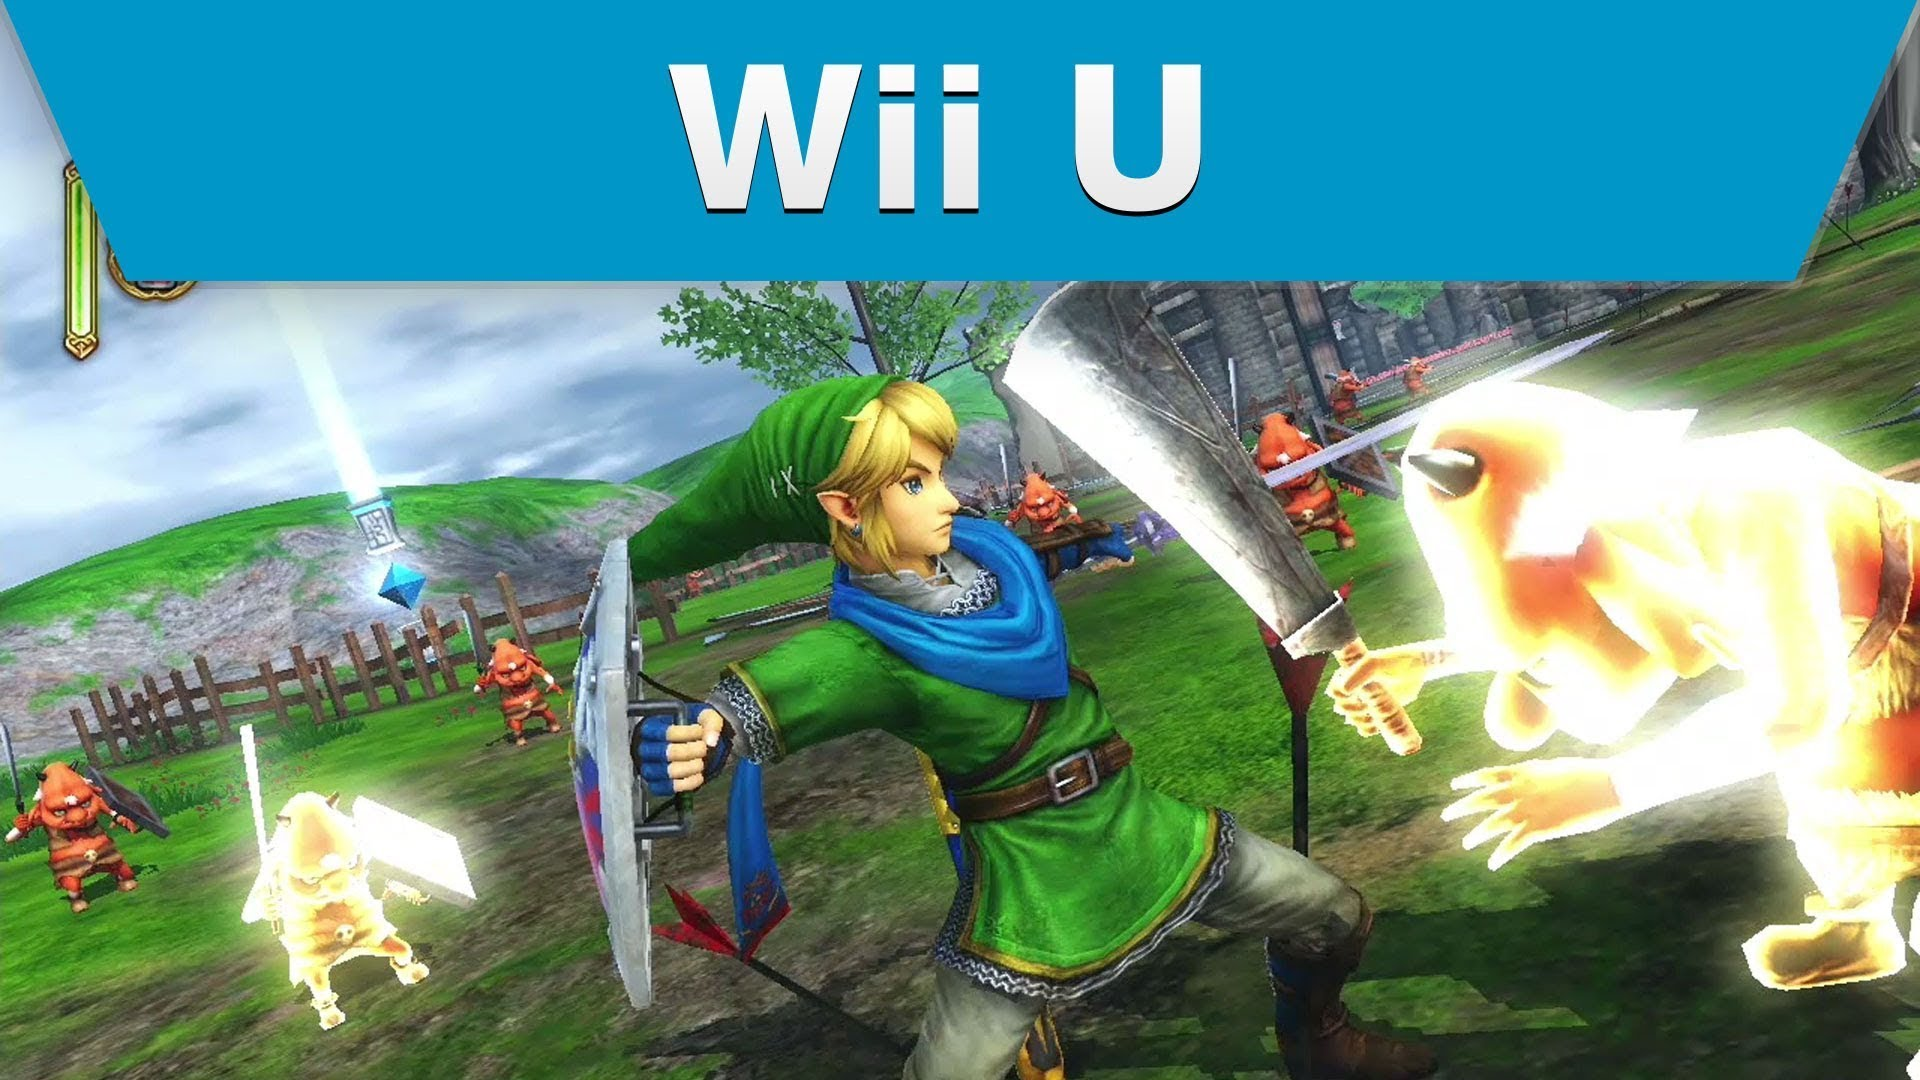 Wii U Game Trailer : Zelda meets dynasty warriors in new trailer for hyrule